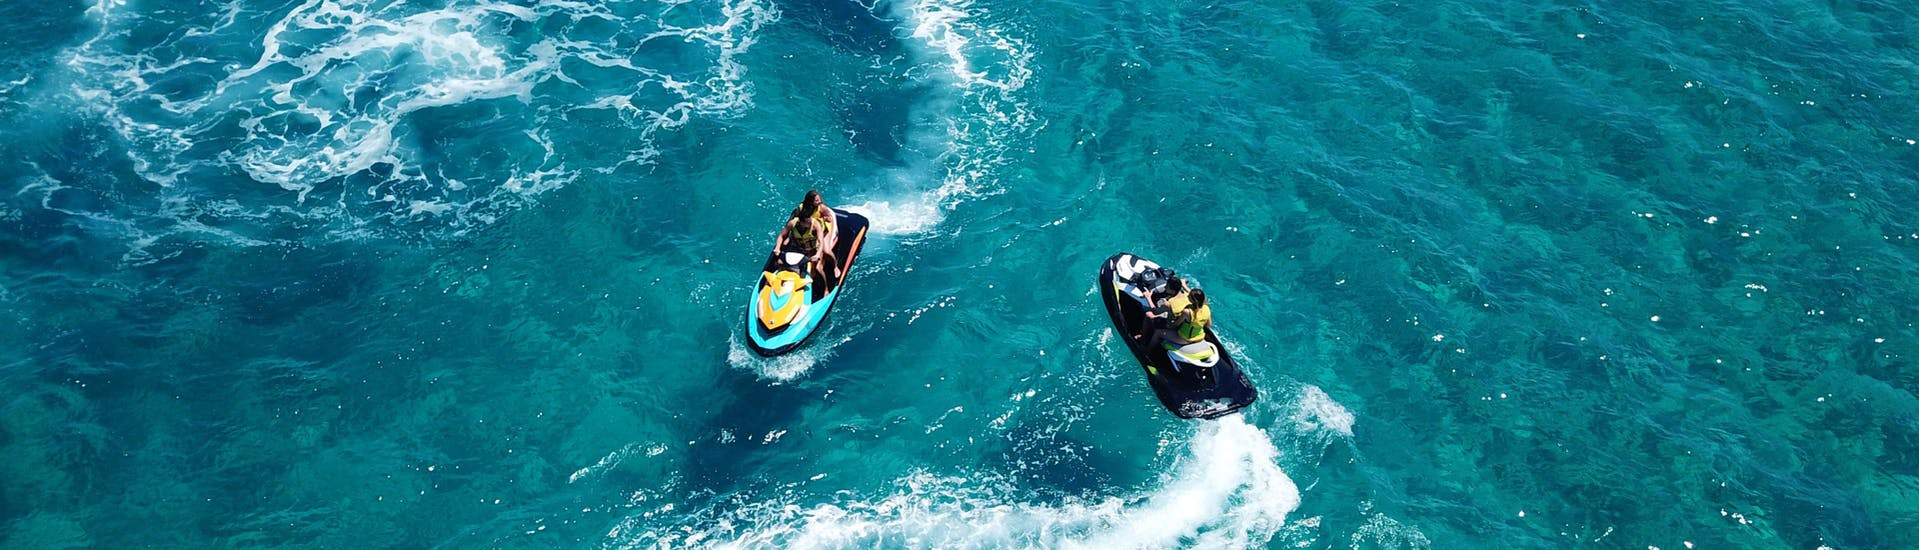 A group of friends riding a banana boat in the holiday destination of Santorini.